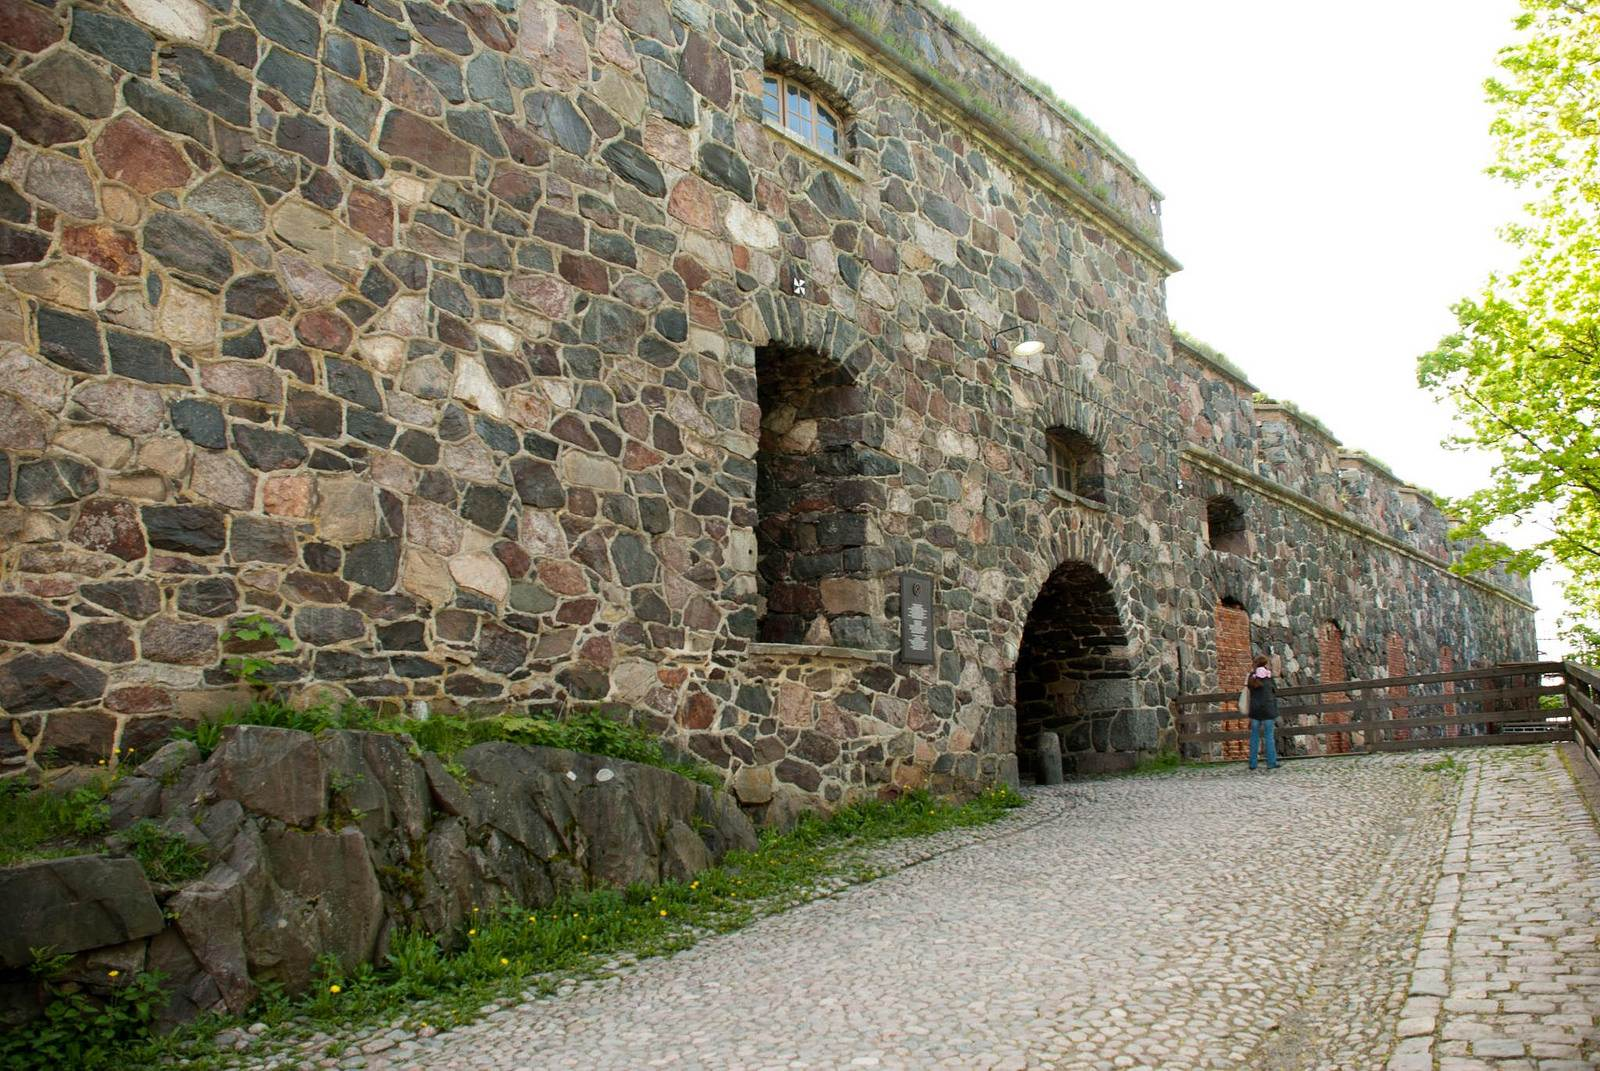 suomenlinna4 The Sea Fortress of Suomenlinna, Finland